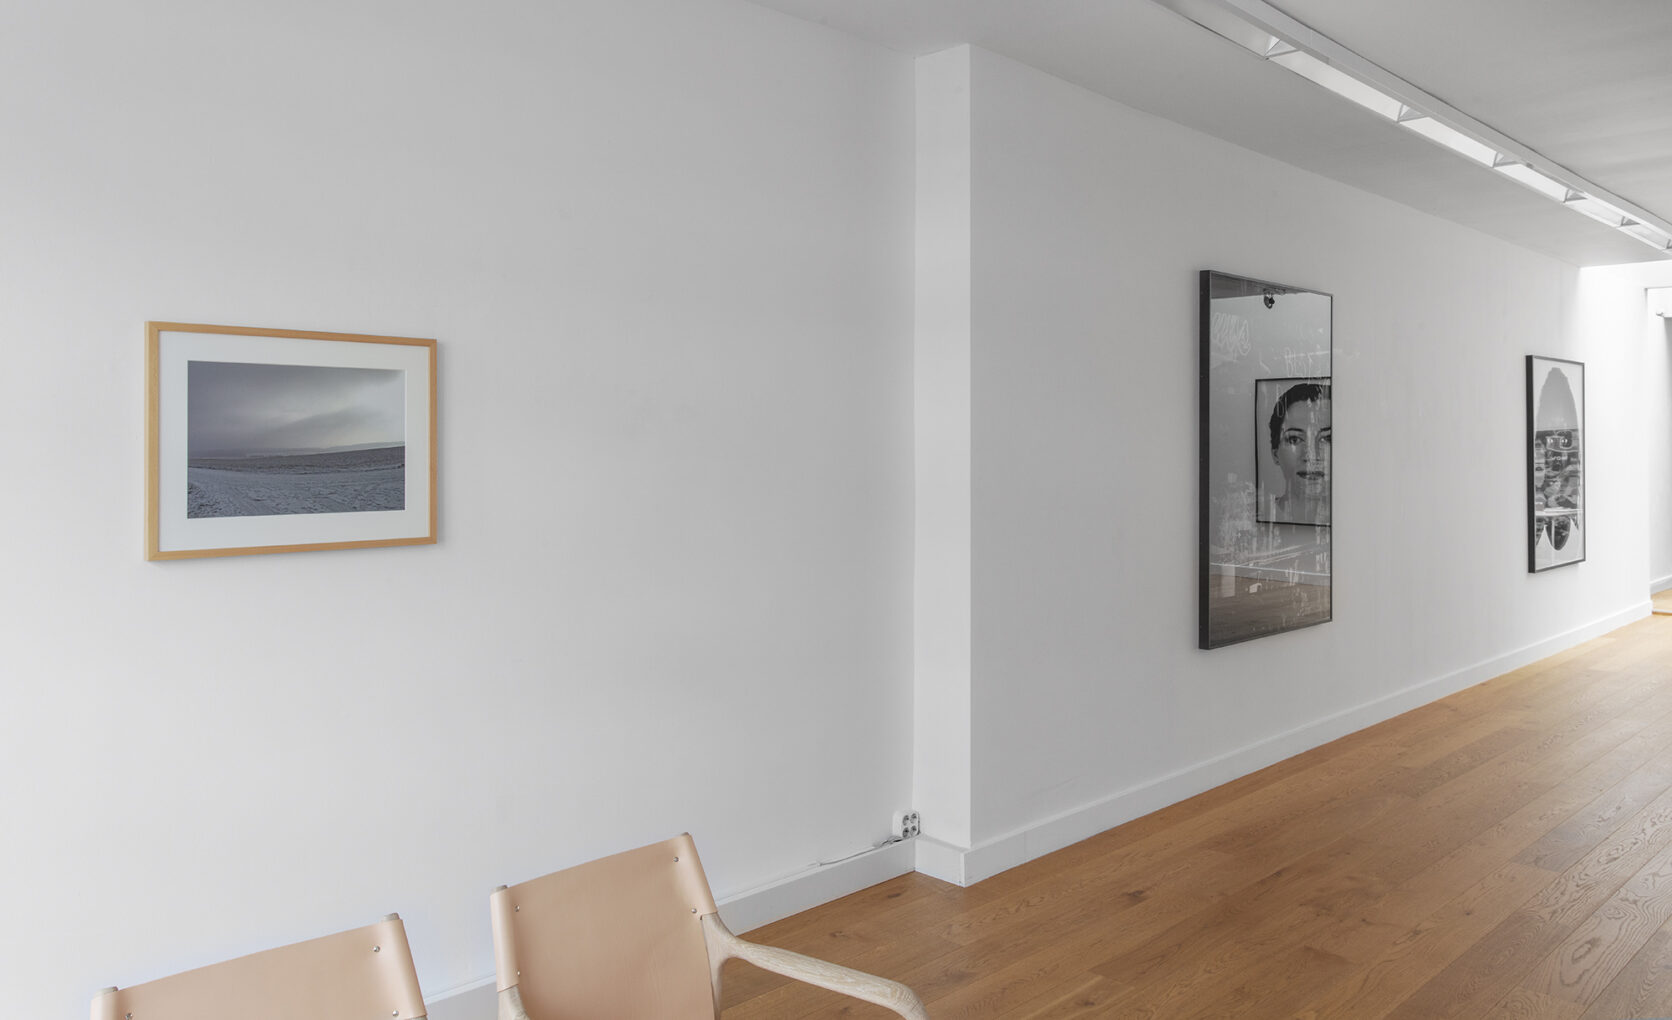 Exhibiton View In Parallel